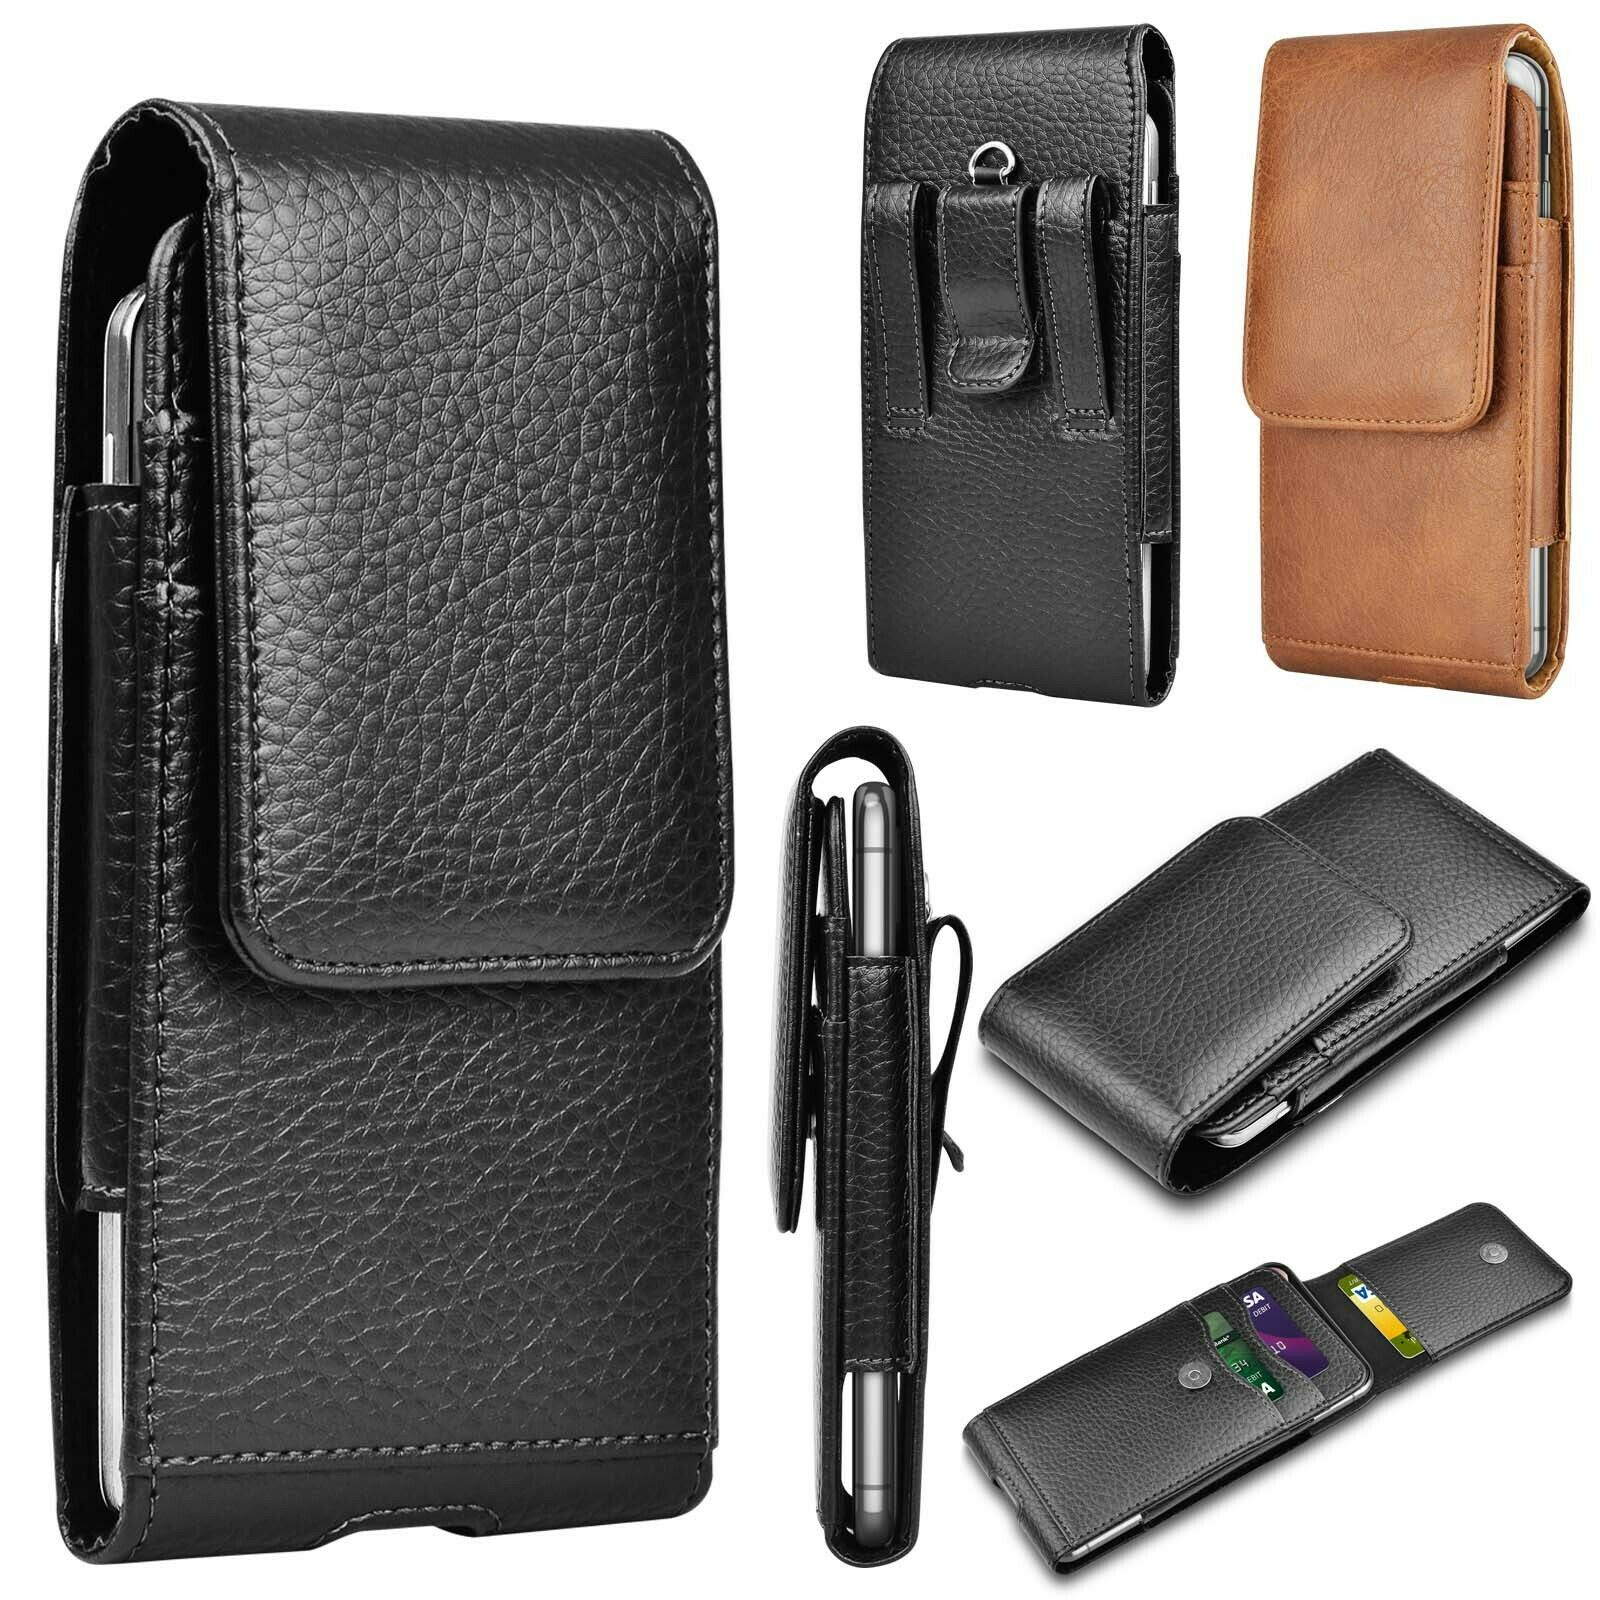 Cell Phone Holster Pouch Leather Wallet Carrying Case with Belt Loop Card Holder Cases, Covers & Skins